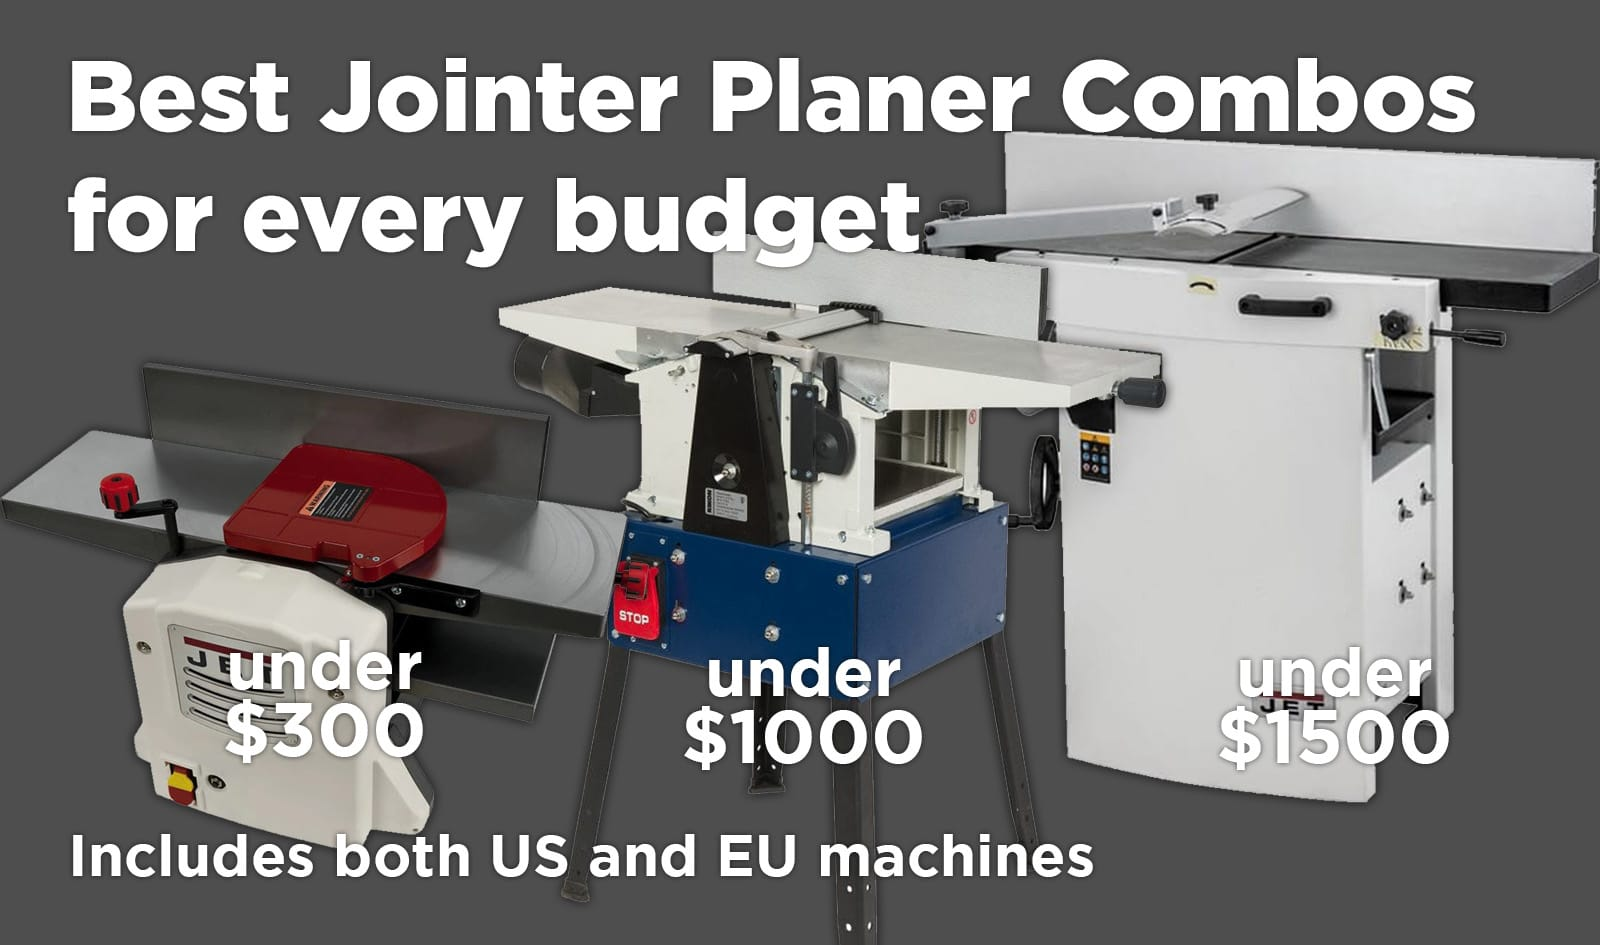 The best Jointer Planer Combo for every budget (2021) – Buyer's Guide